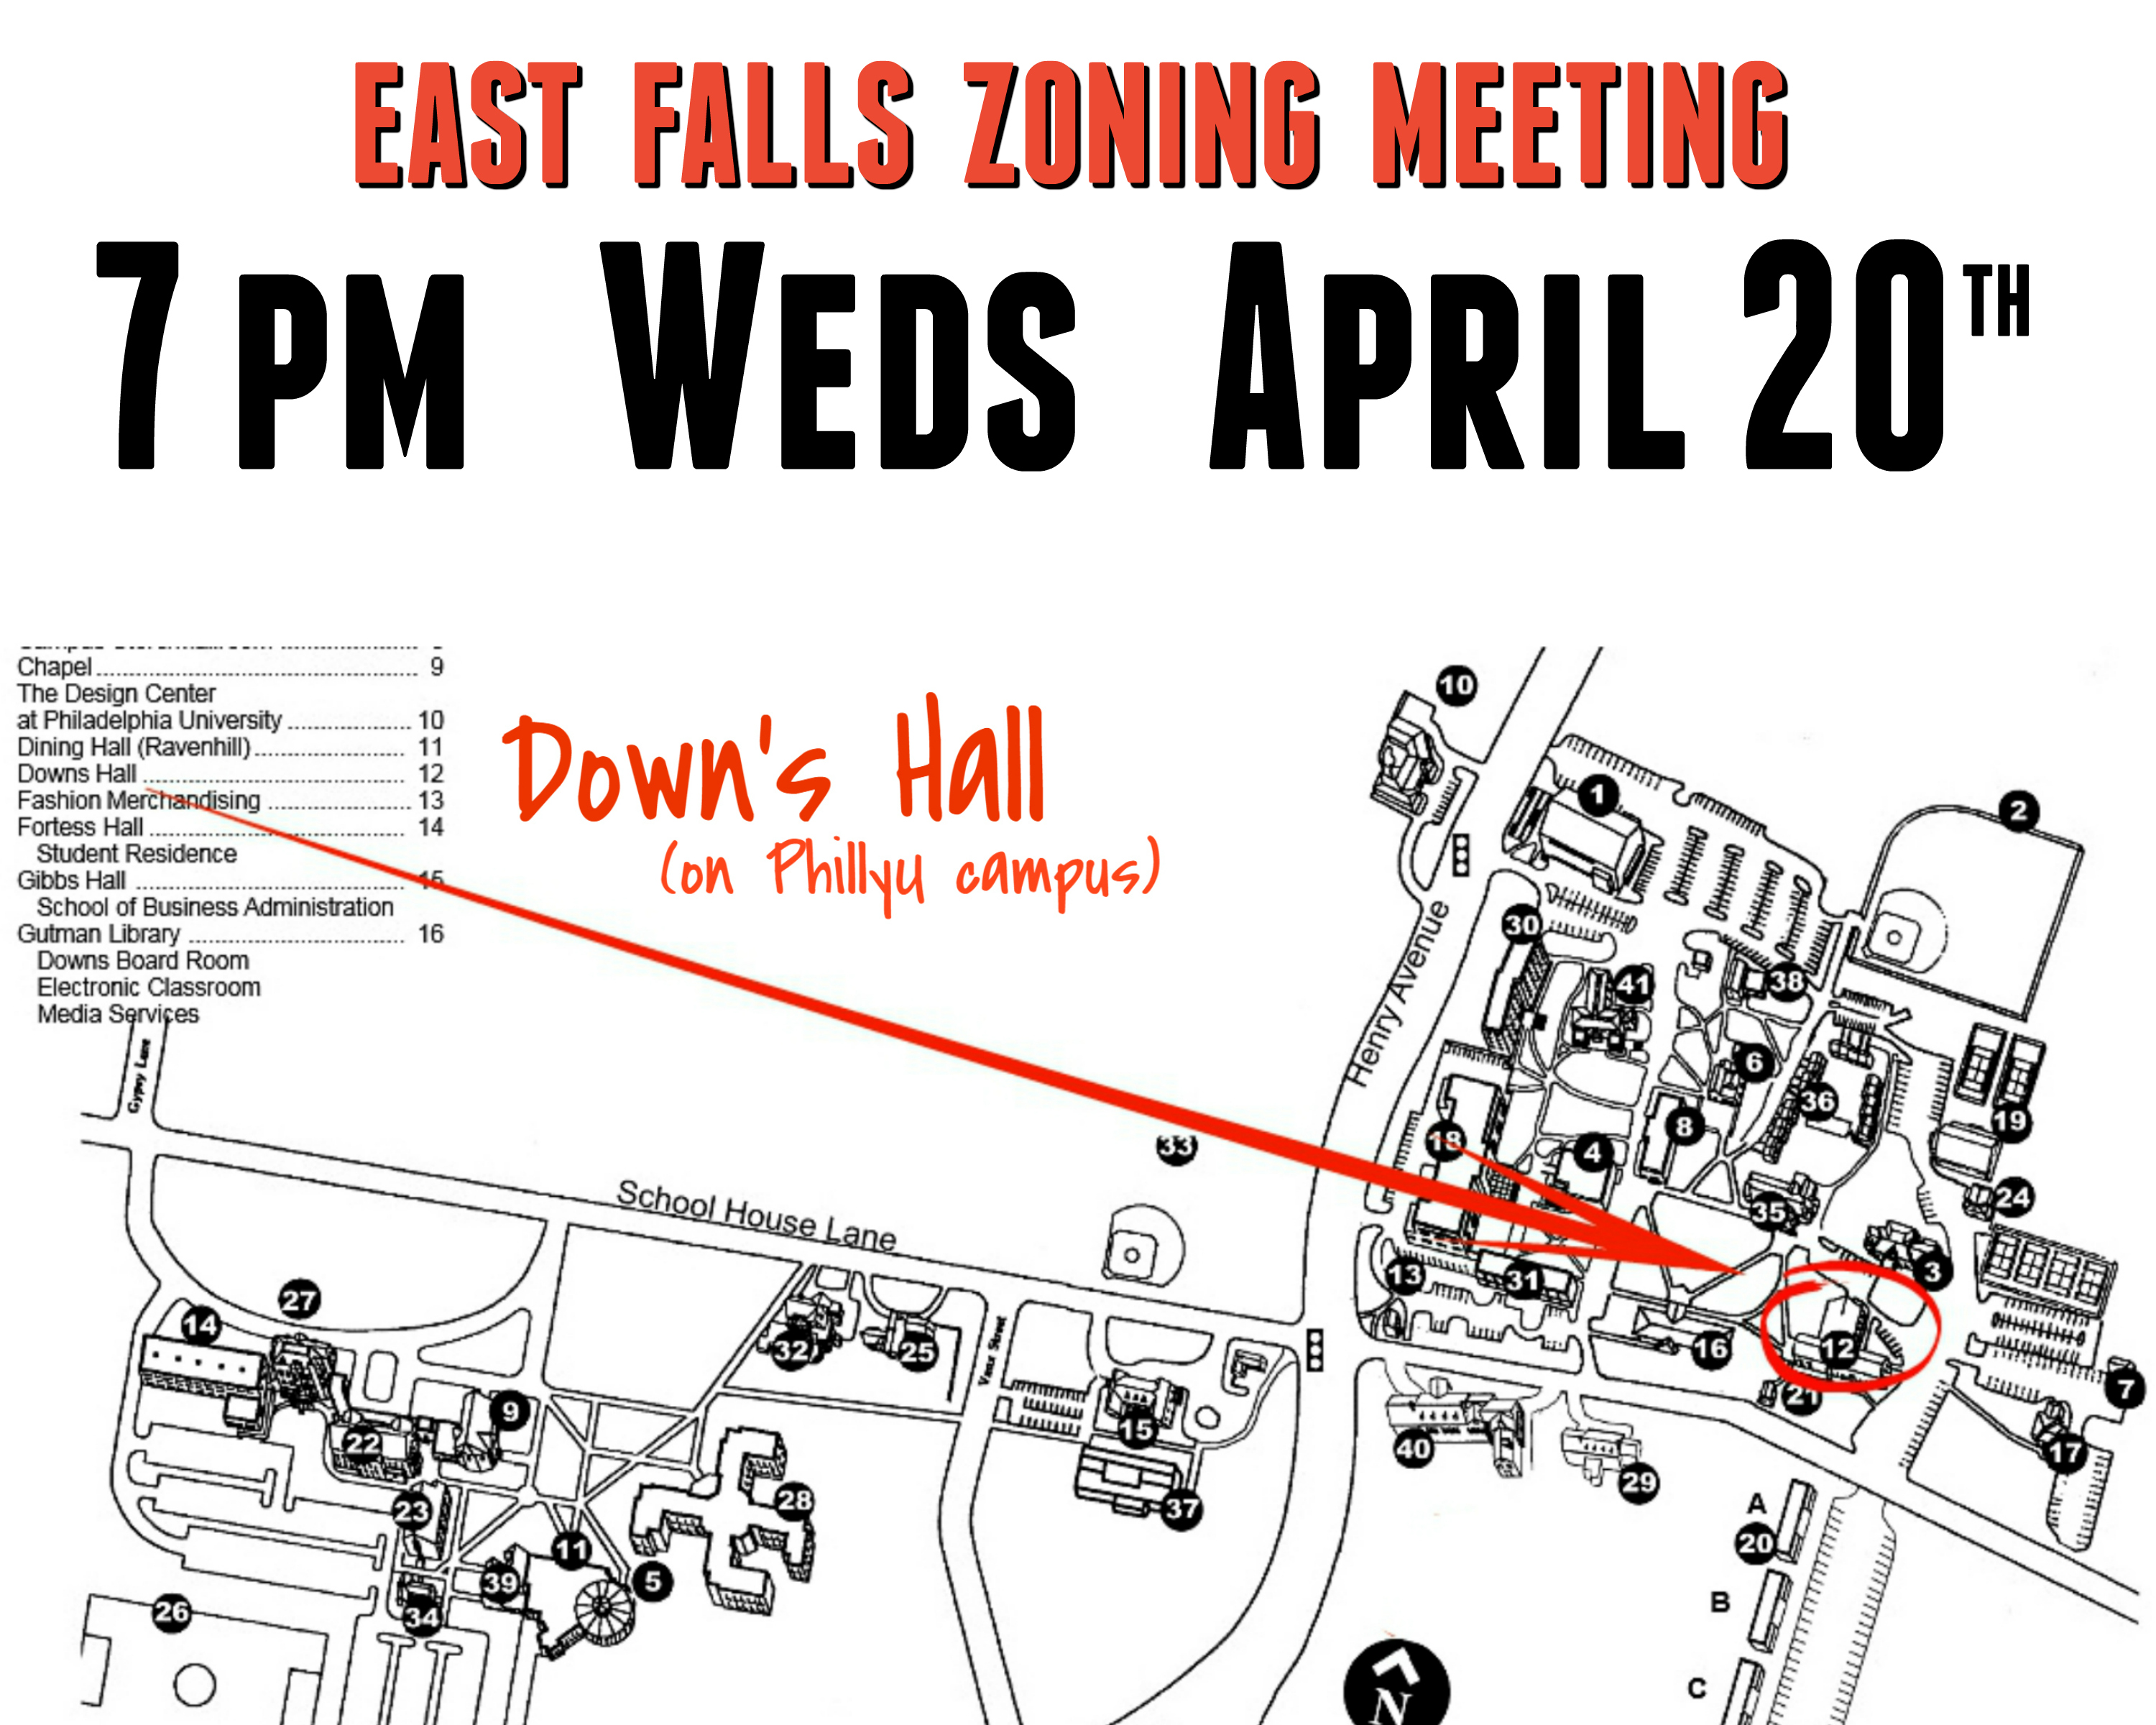 EastFallsLocal zoning meeting announcement